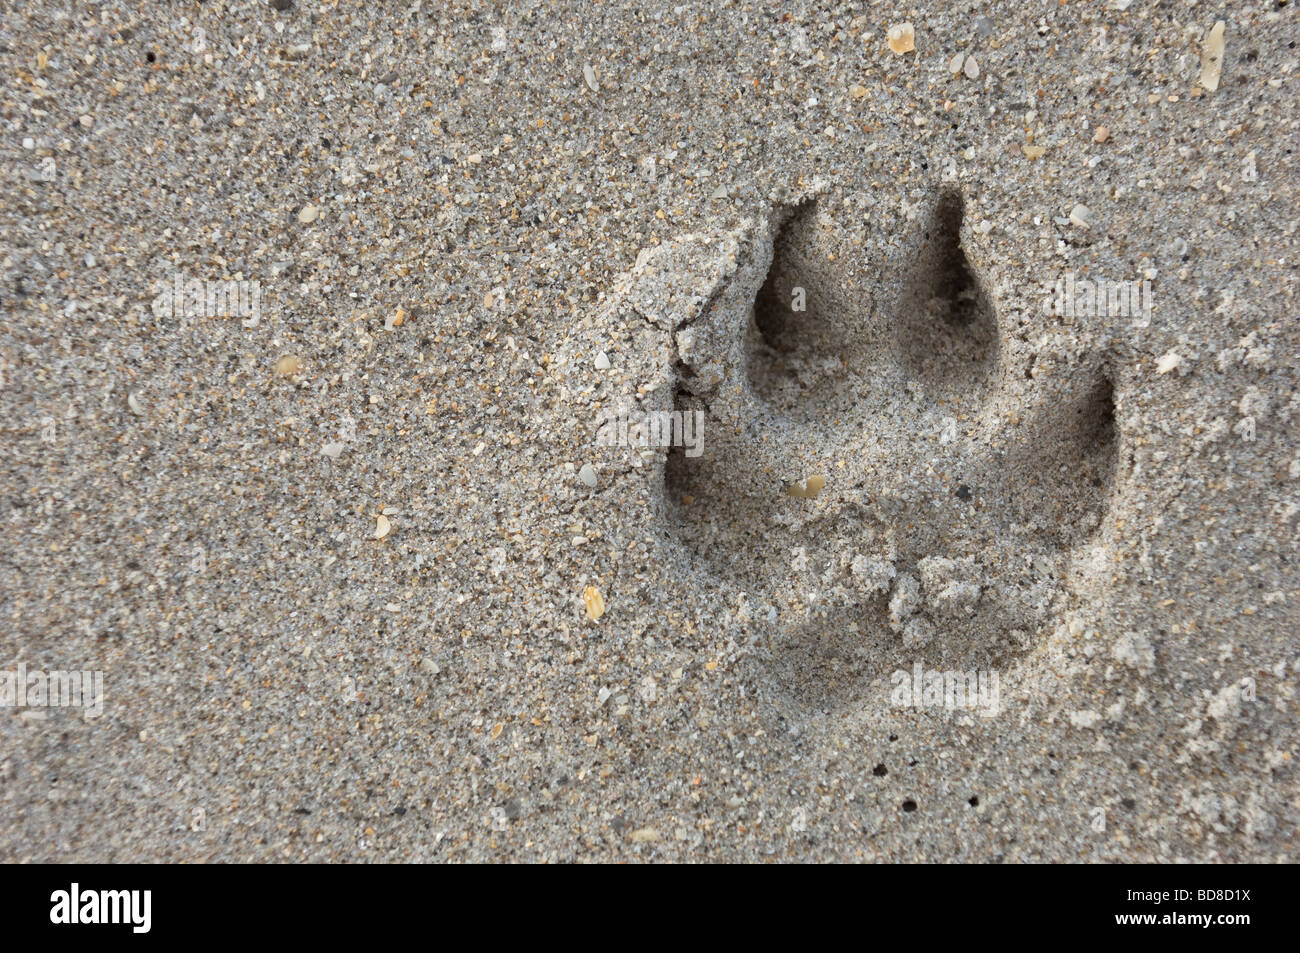 pawprint from do impression in sand - Stock Image